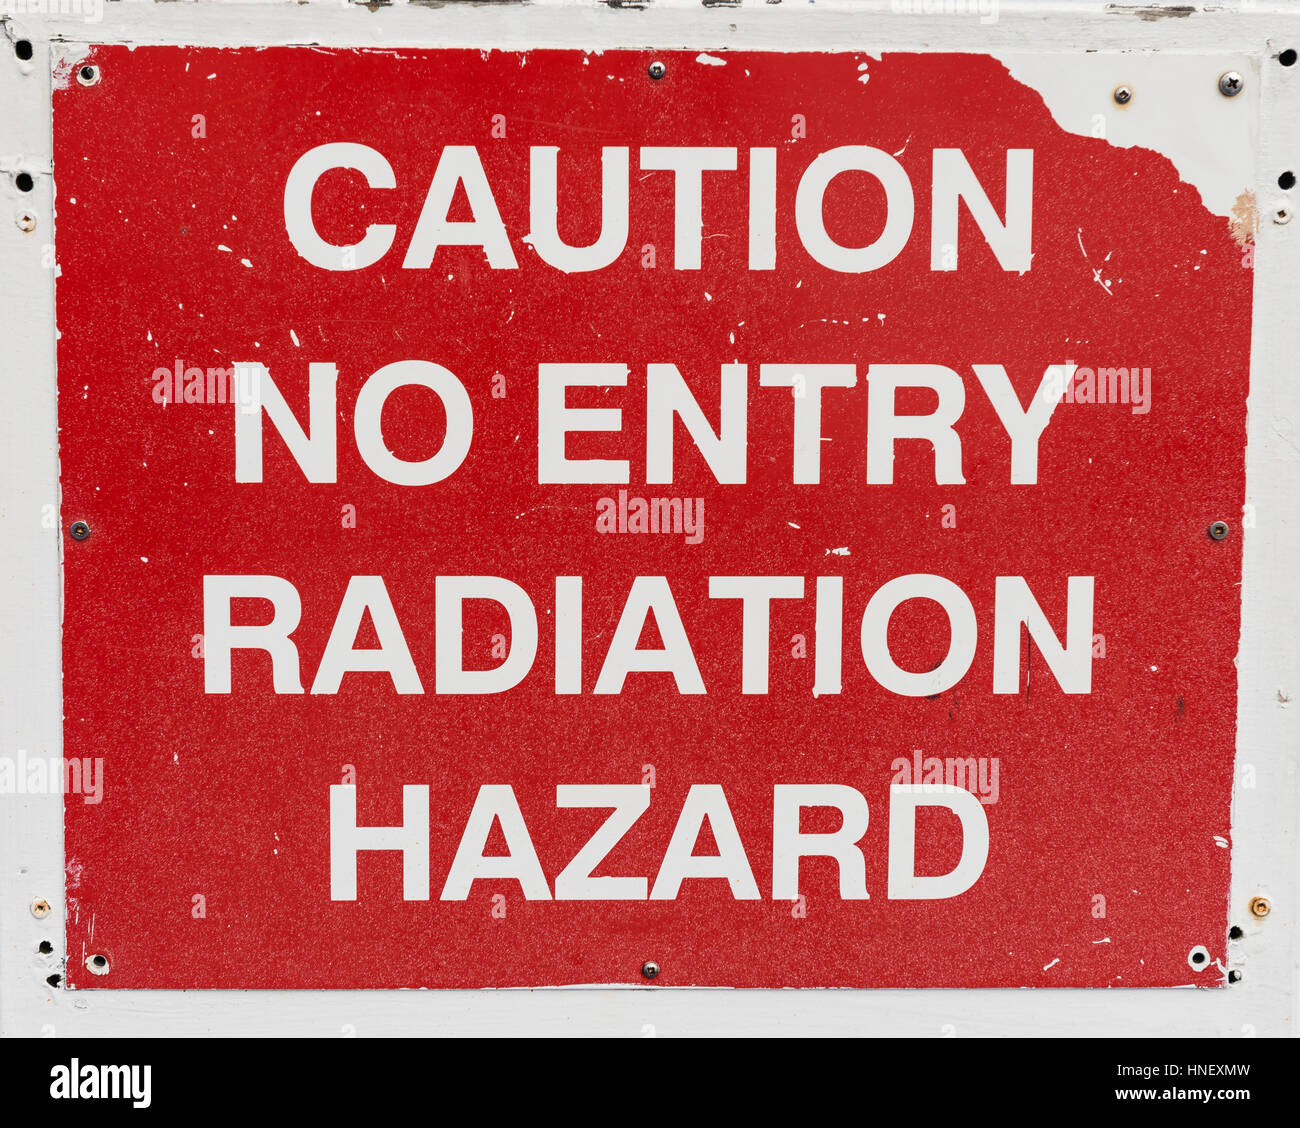 Lettering Caution no entry radiation hazard, warning sign against radiation - Stock Image